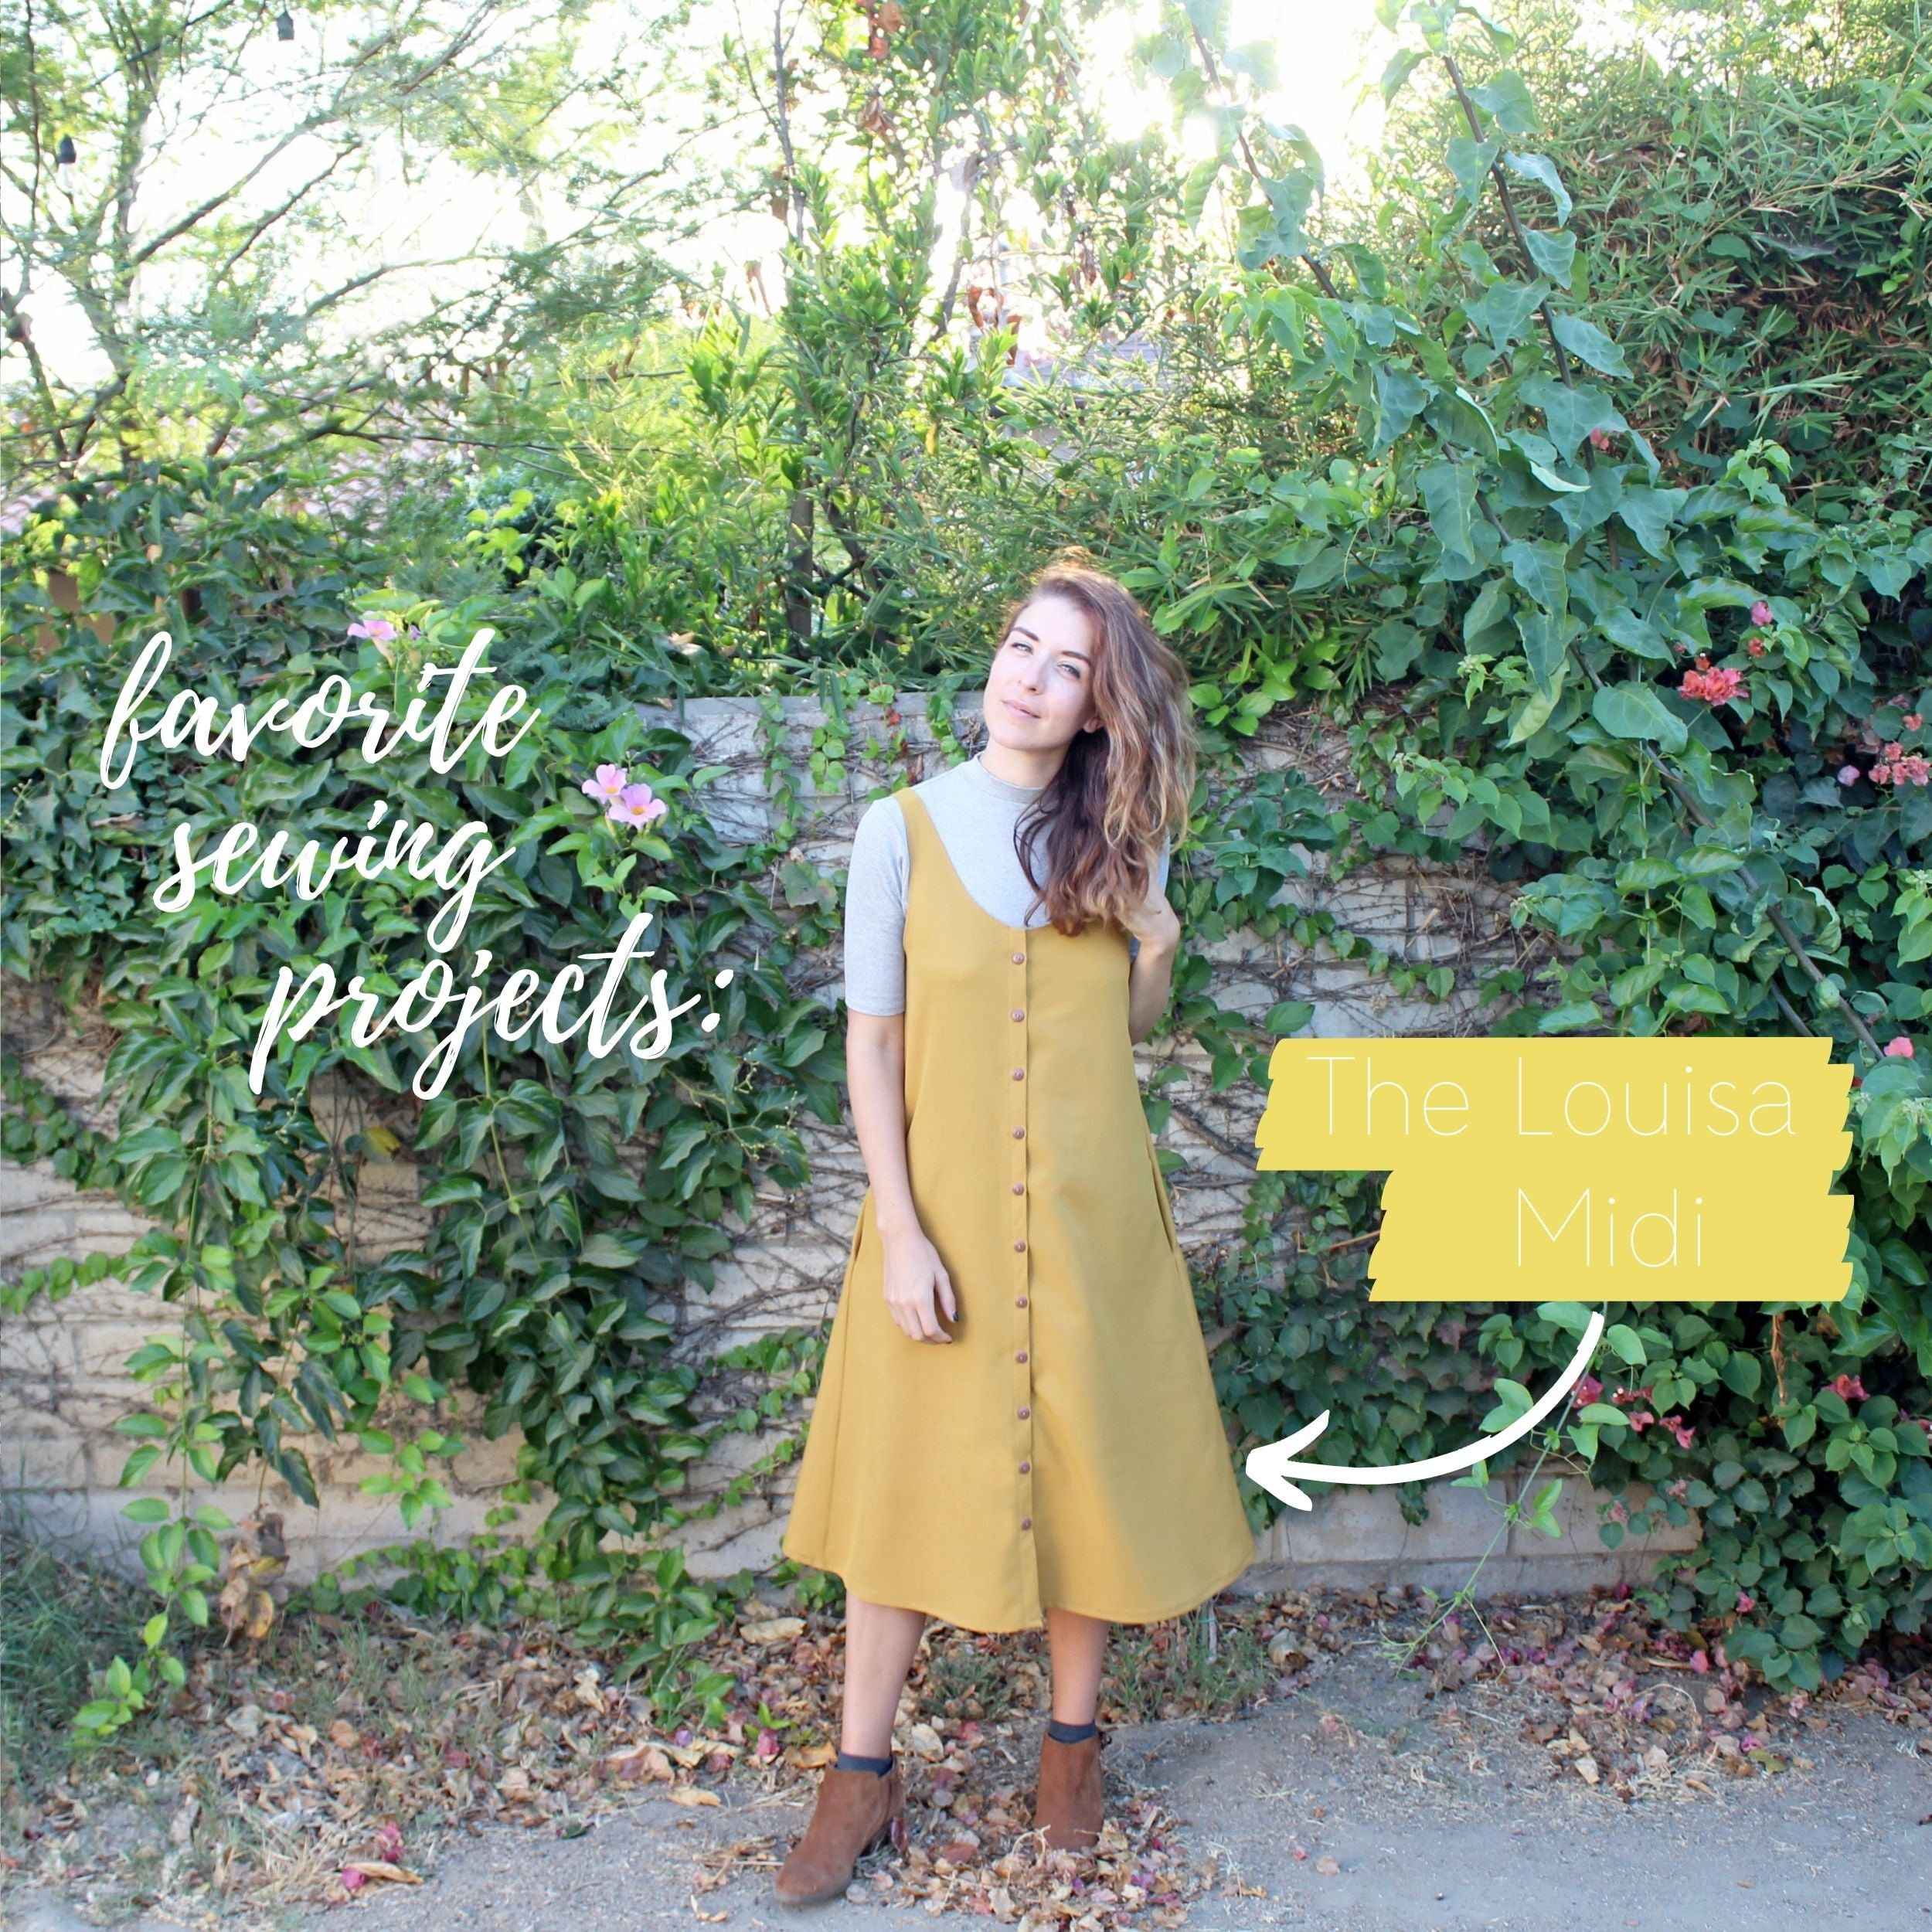 5 Favorite Sewing Projects & Reads The Louisa Midi